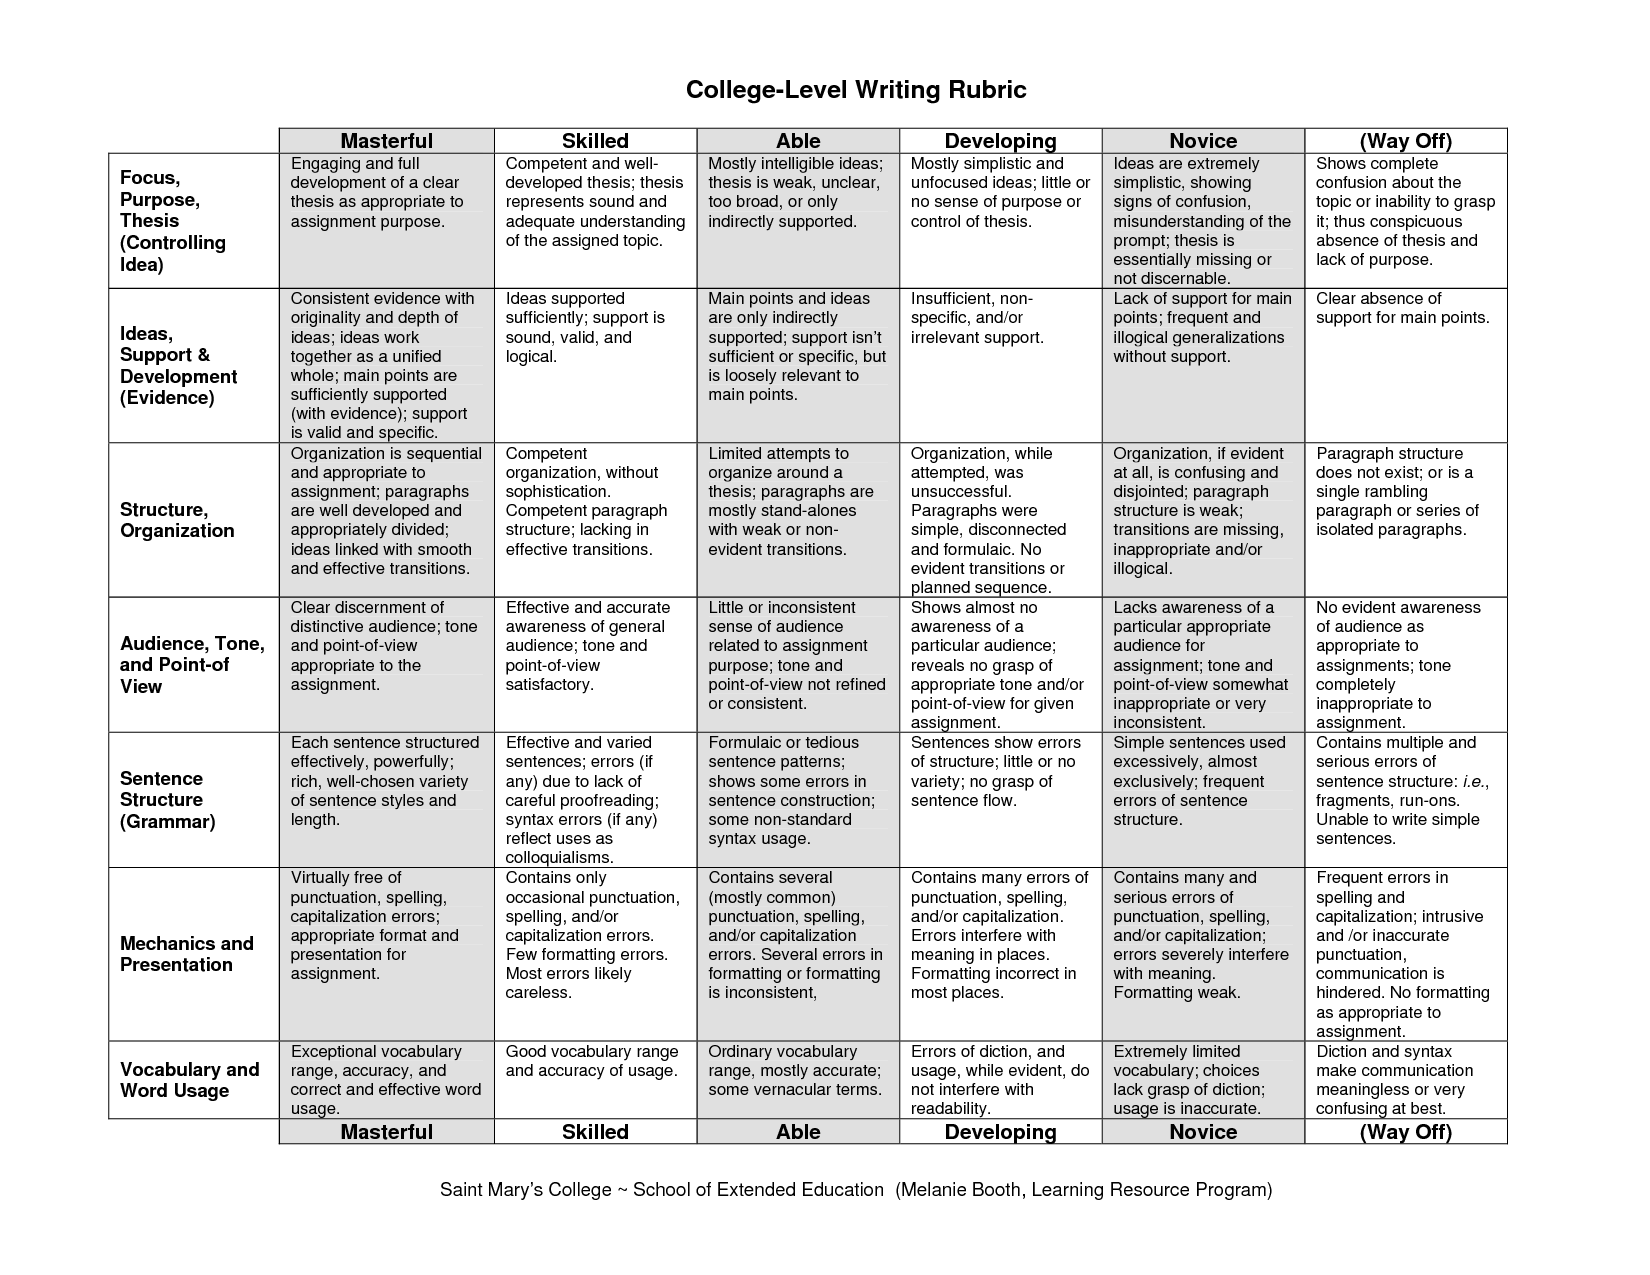 college essay writing rubric Writing rubric johnson community college, downloaded 12/22/04 from http:// wwwjcccnet/home/depts/6111/site/assmnt/cogout/comwrite 6 = essay demonstrates excellent composition skills including a clear and thought- provoking thesis, appropriate and effective organization, lively and convincing.